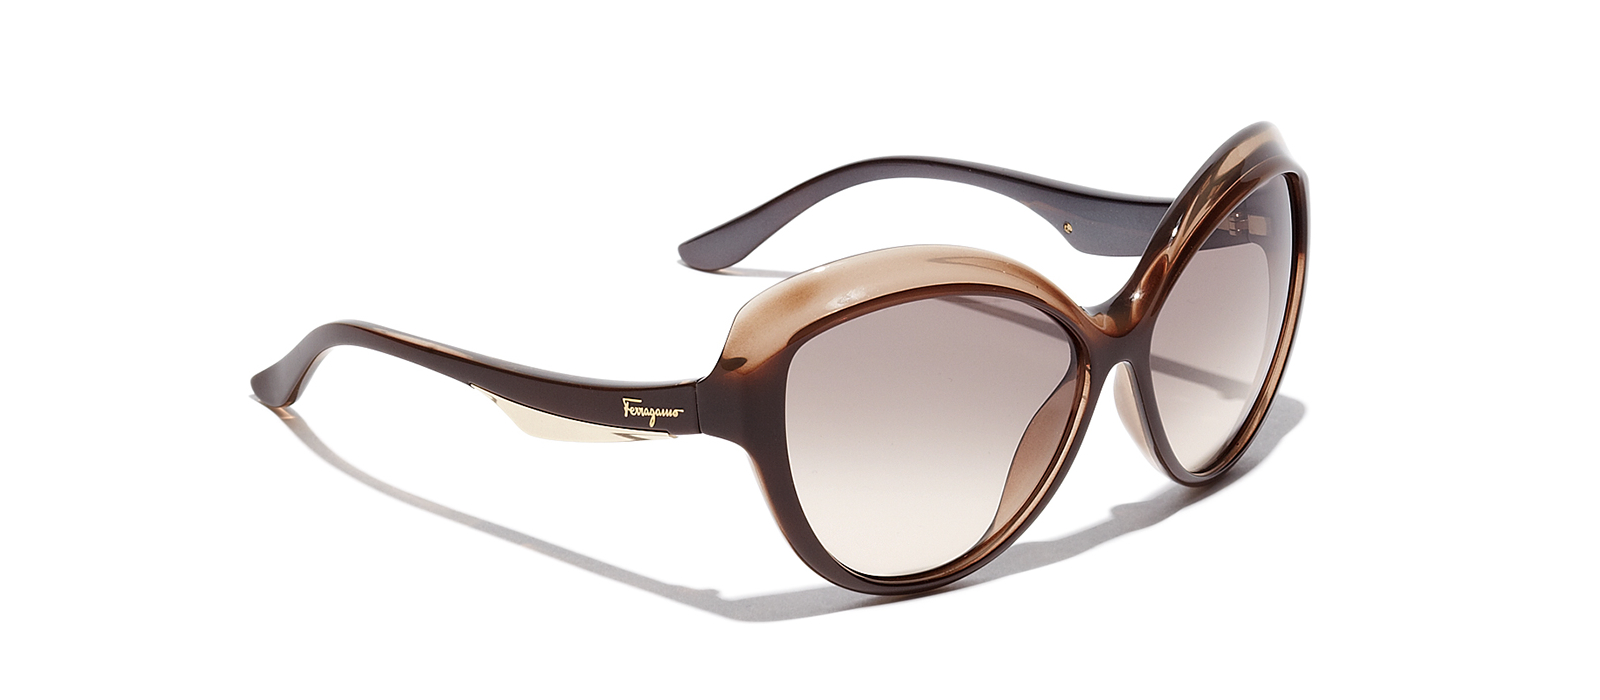 Salvatore-Ferragamo-sunglasses-2